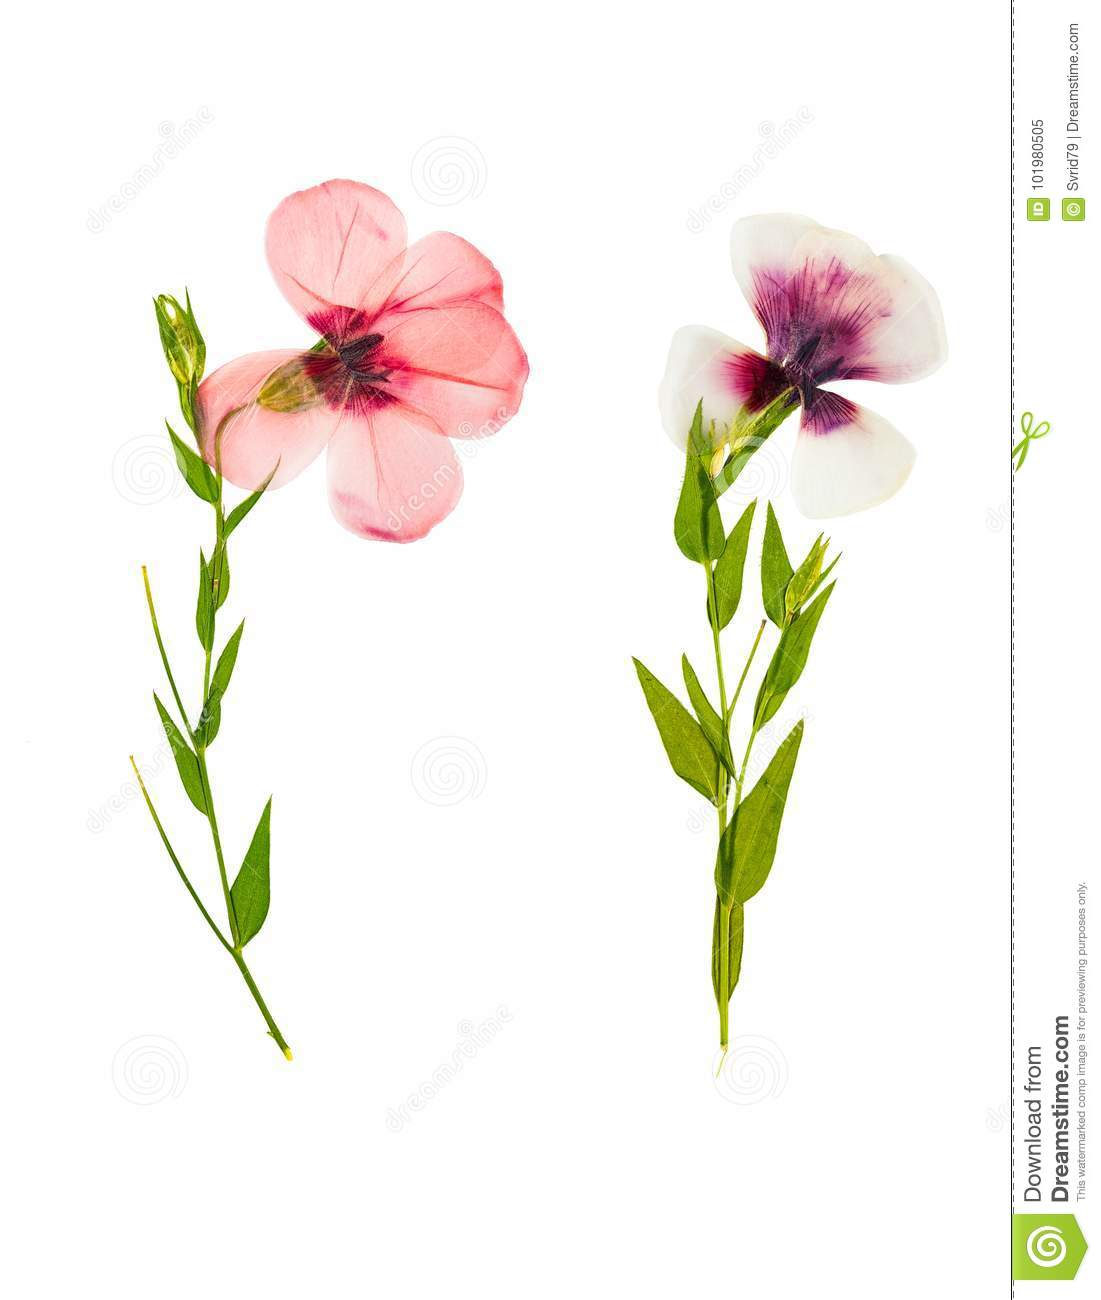 Pressed and dried delicate flower flax, isolated on white